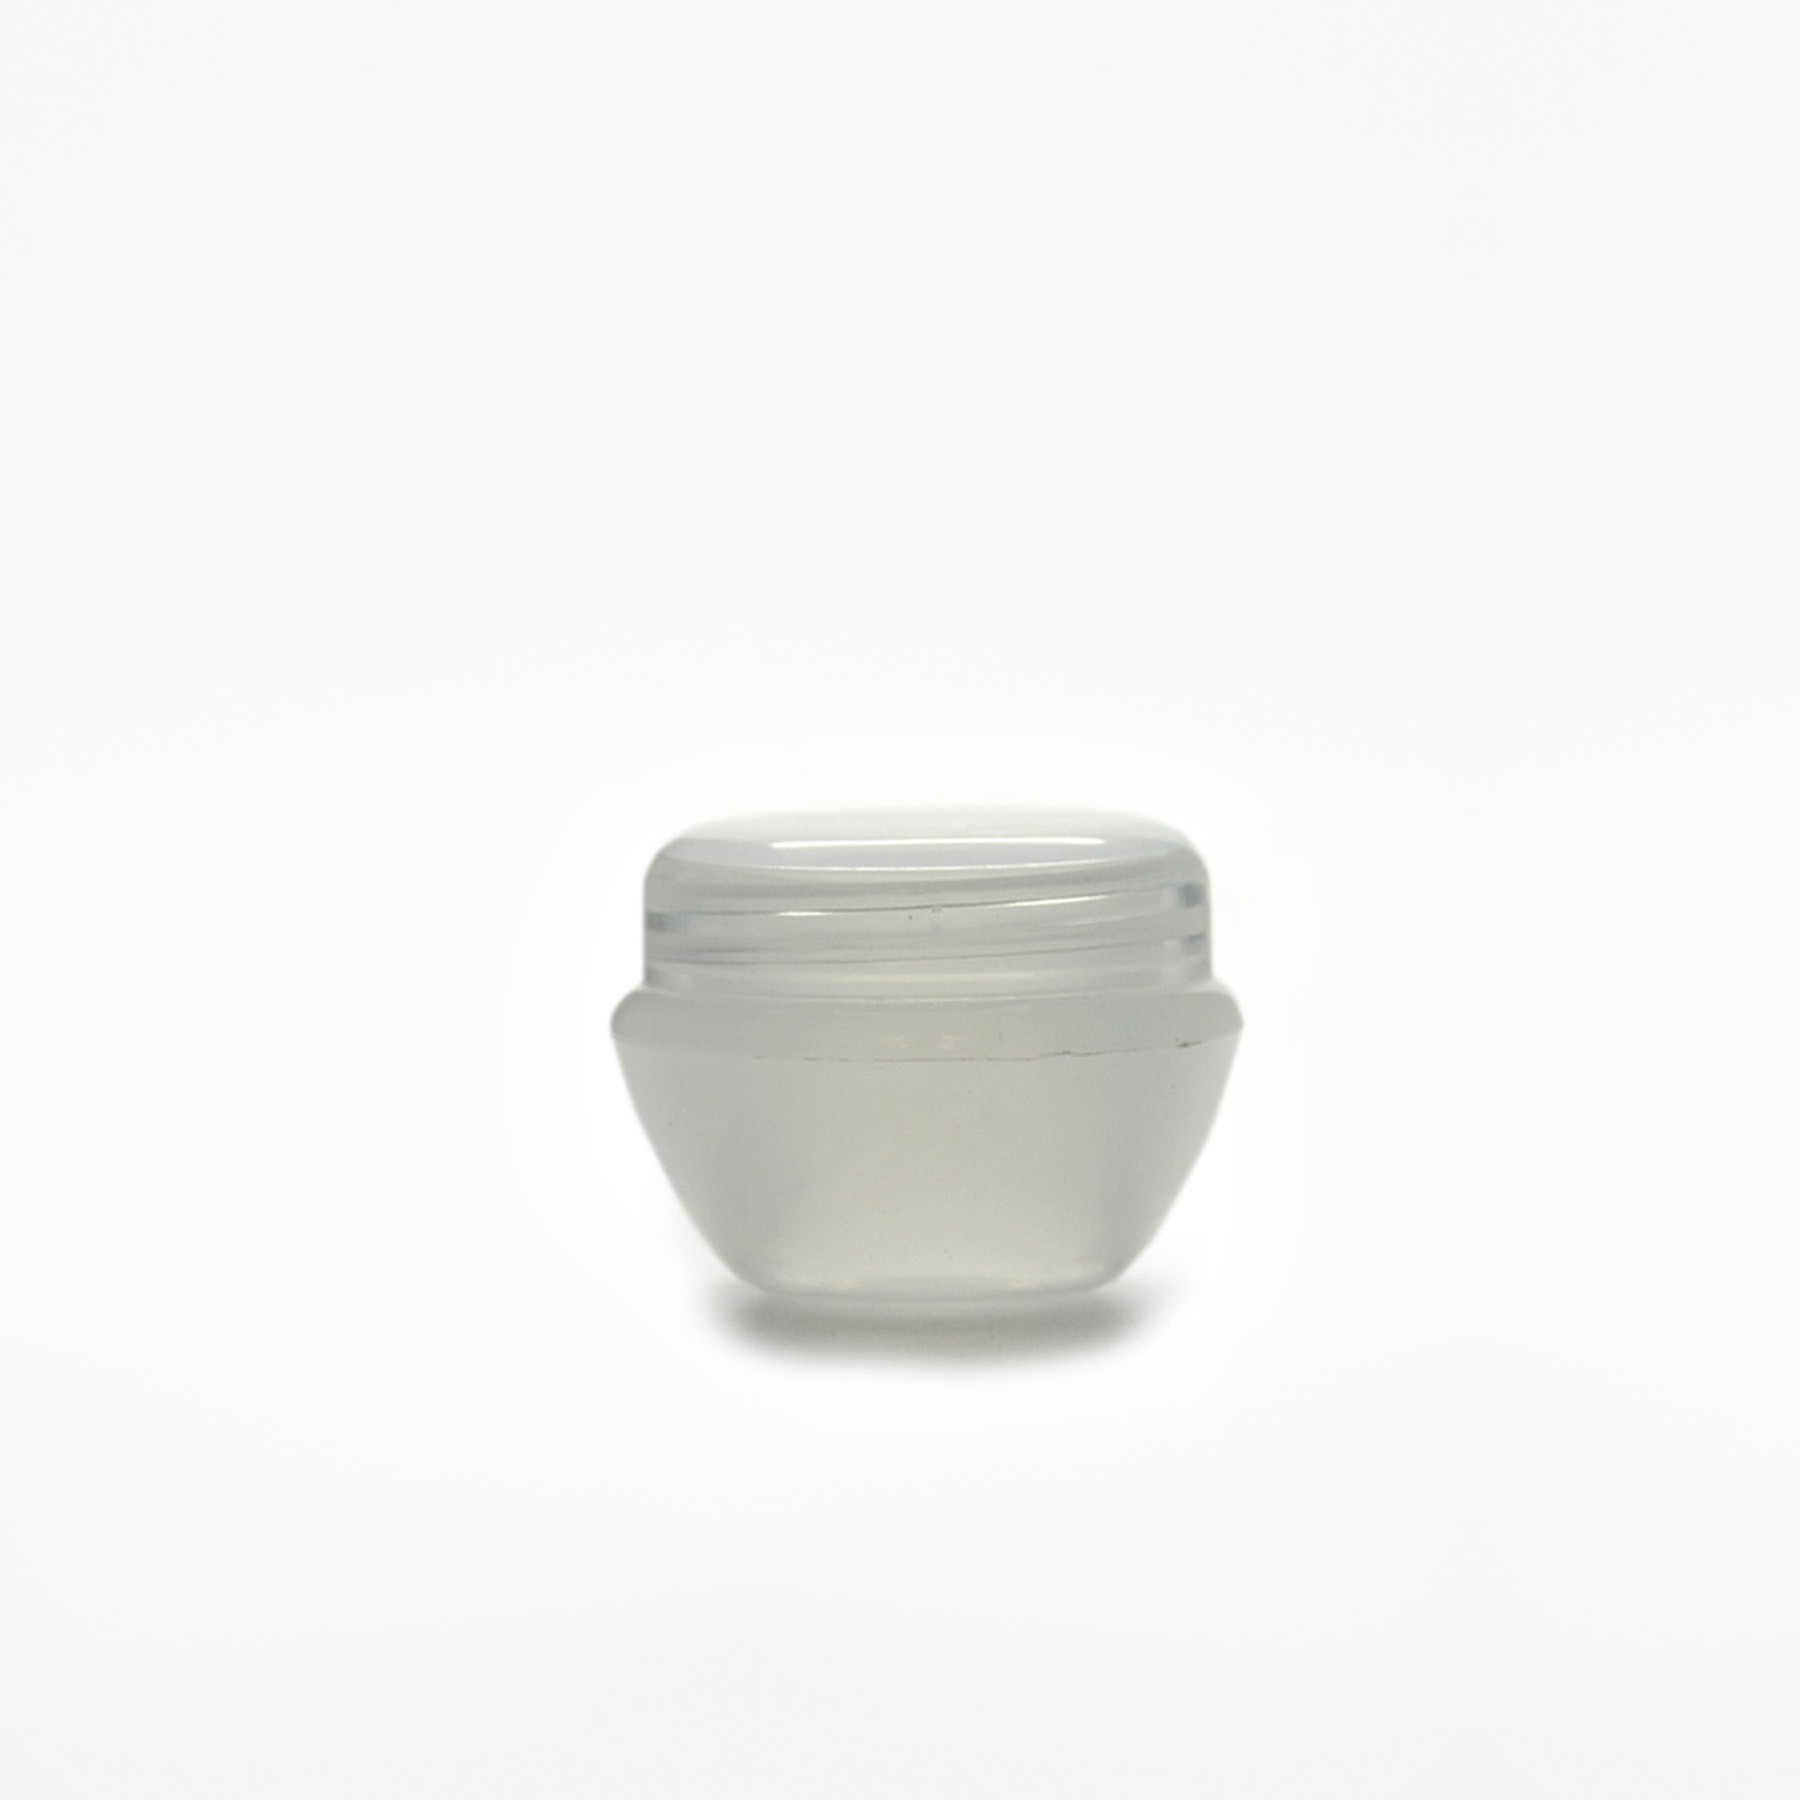 5ml COSMETIC JARS NATURAL COMPLETE WITH SHIVE & LID